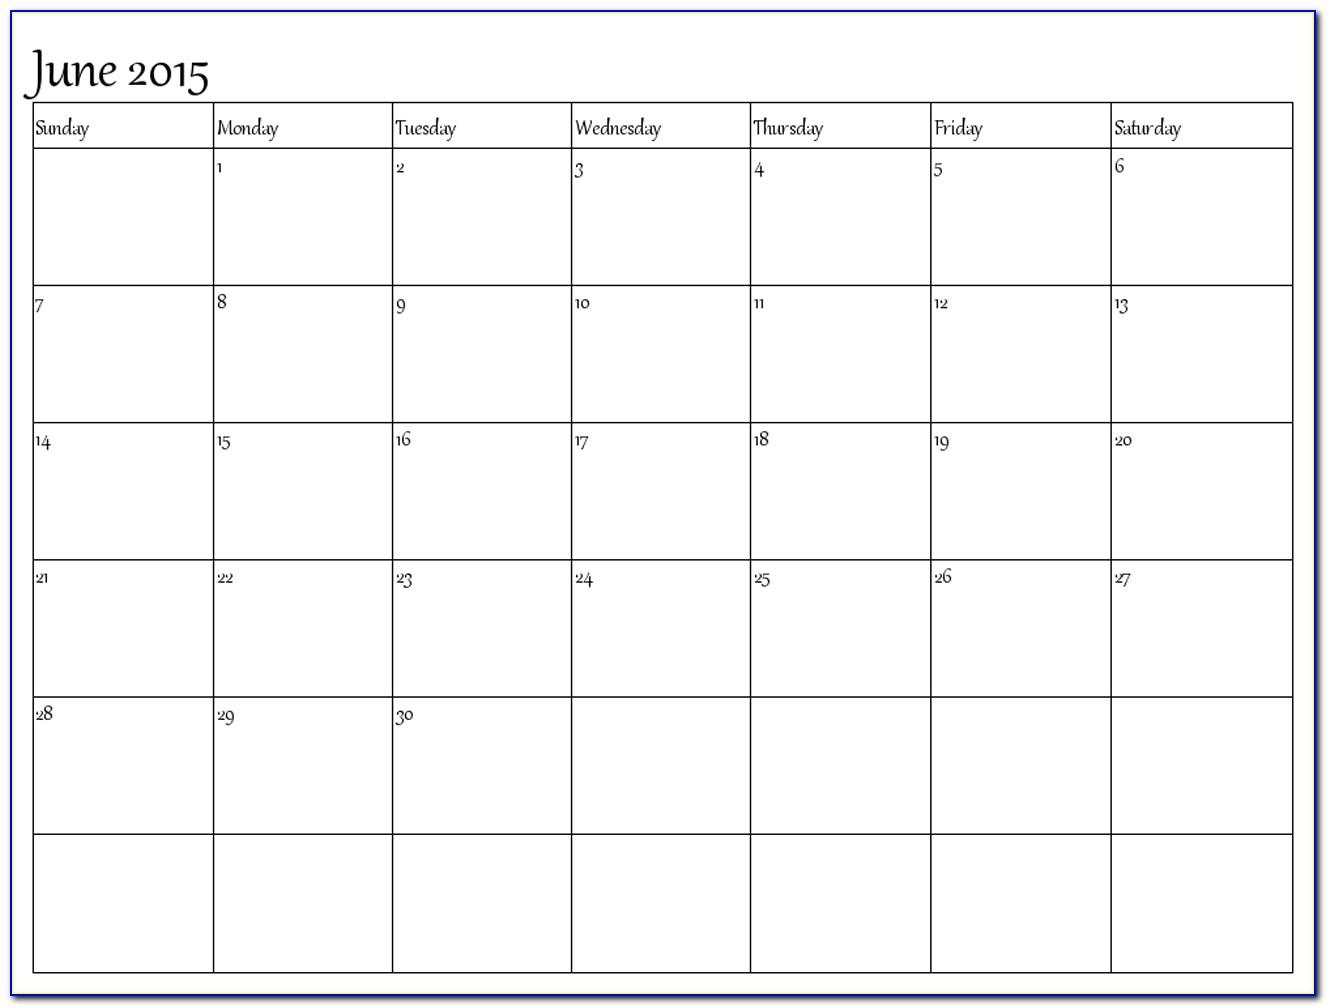 Weekly Schedule Template Excel With Hours